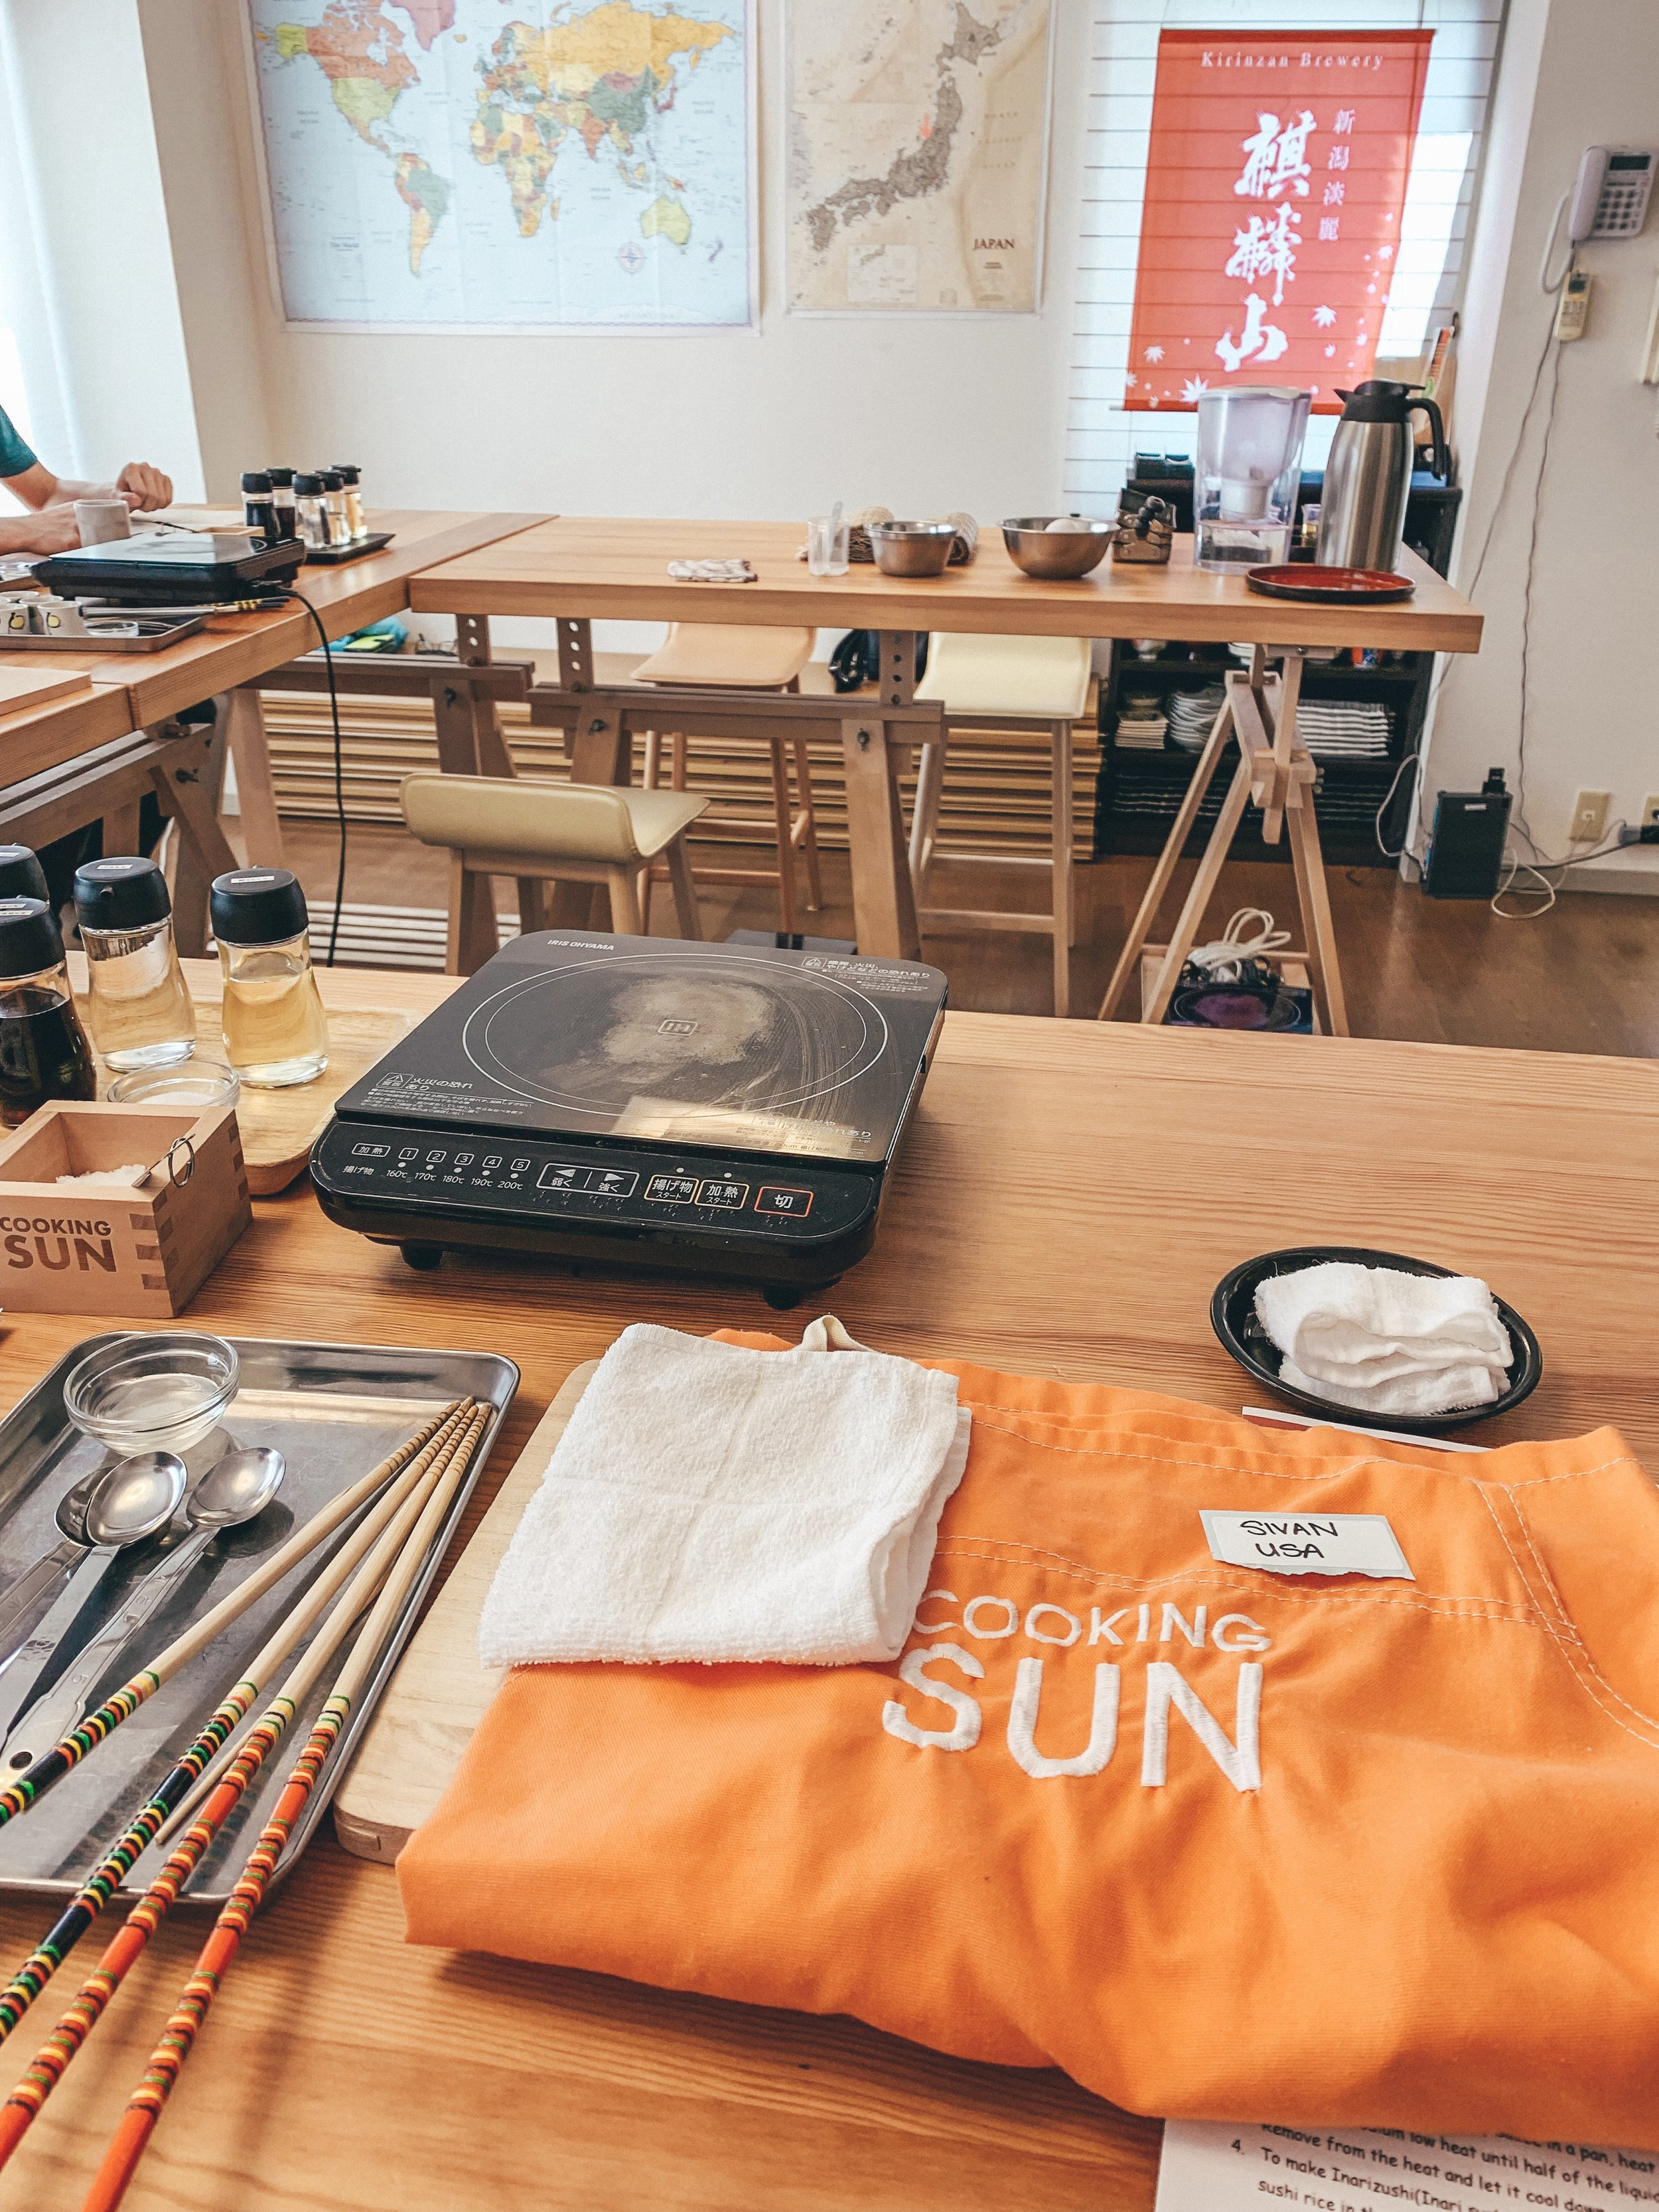 Apron and cooking utensils ready for the class.